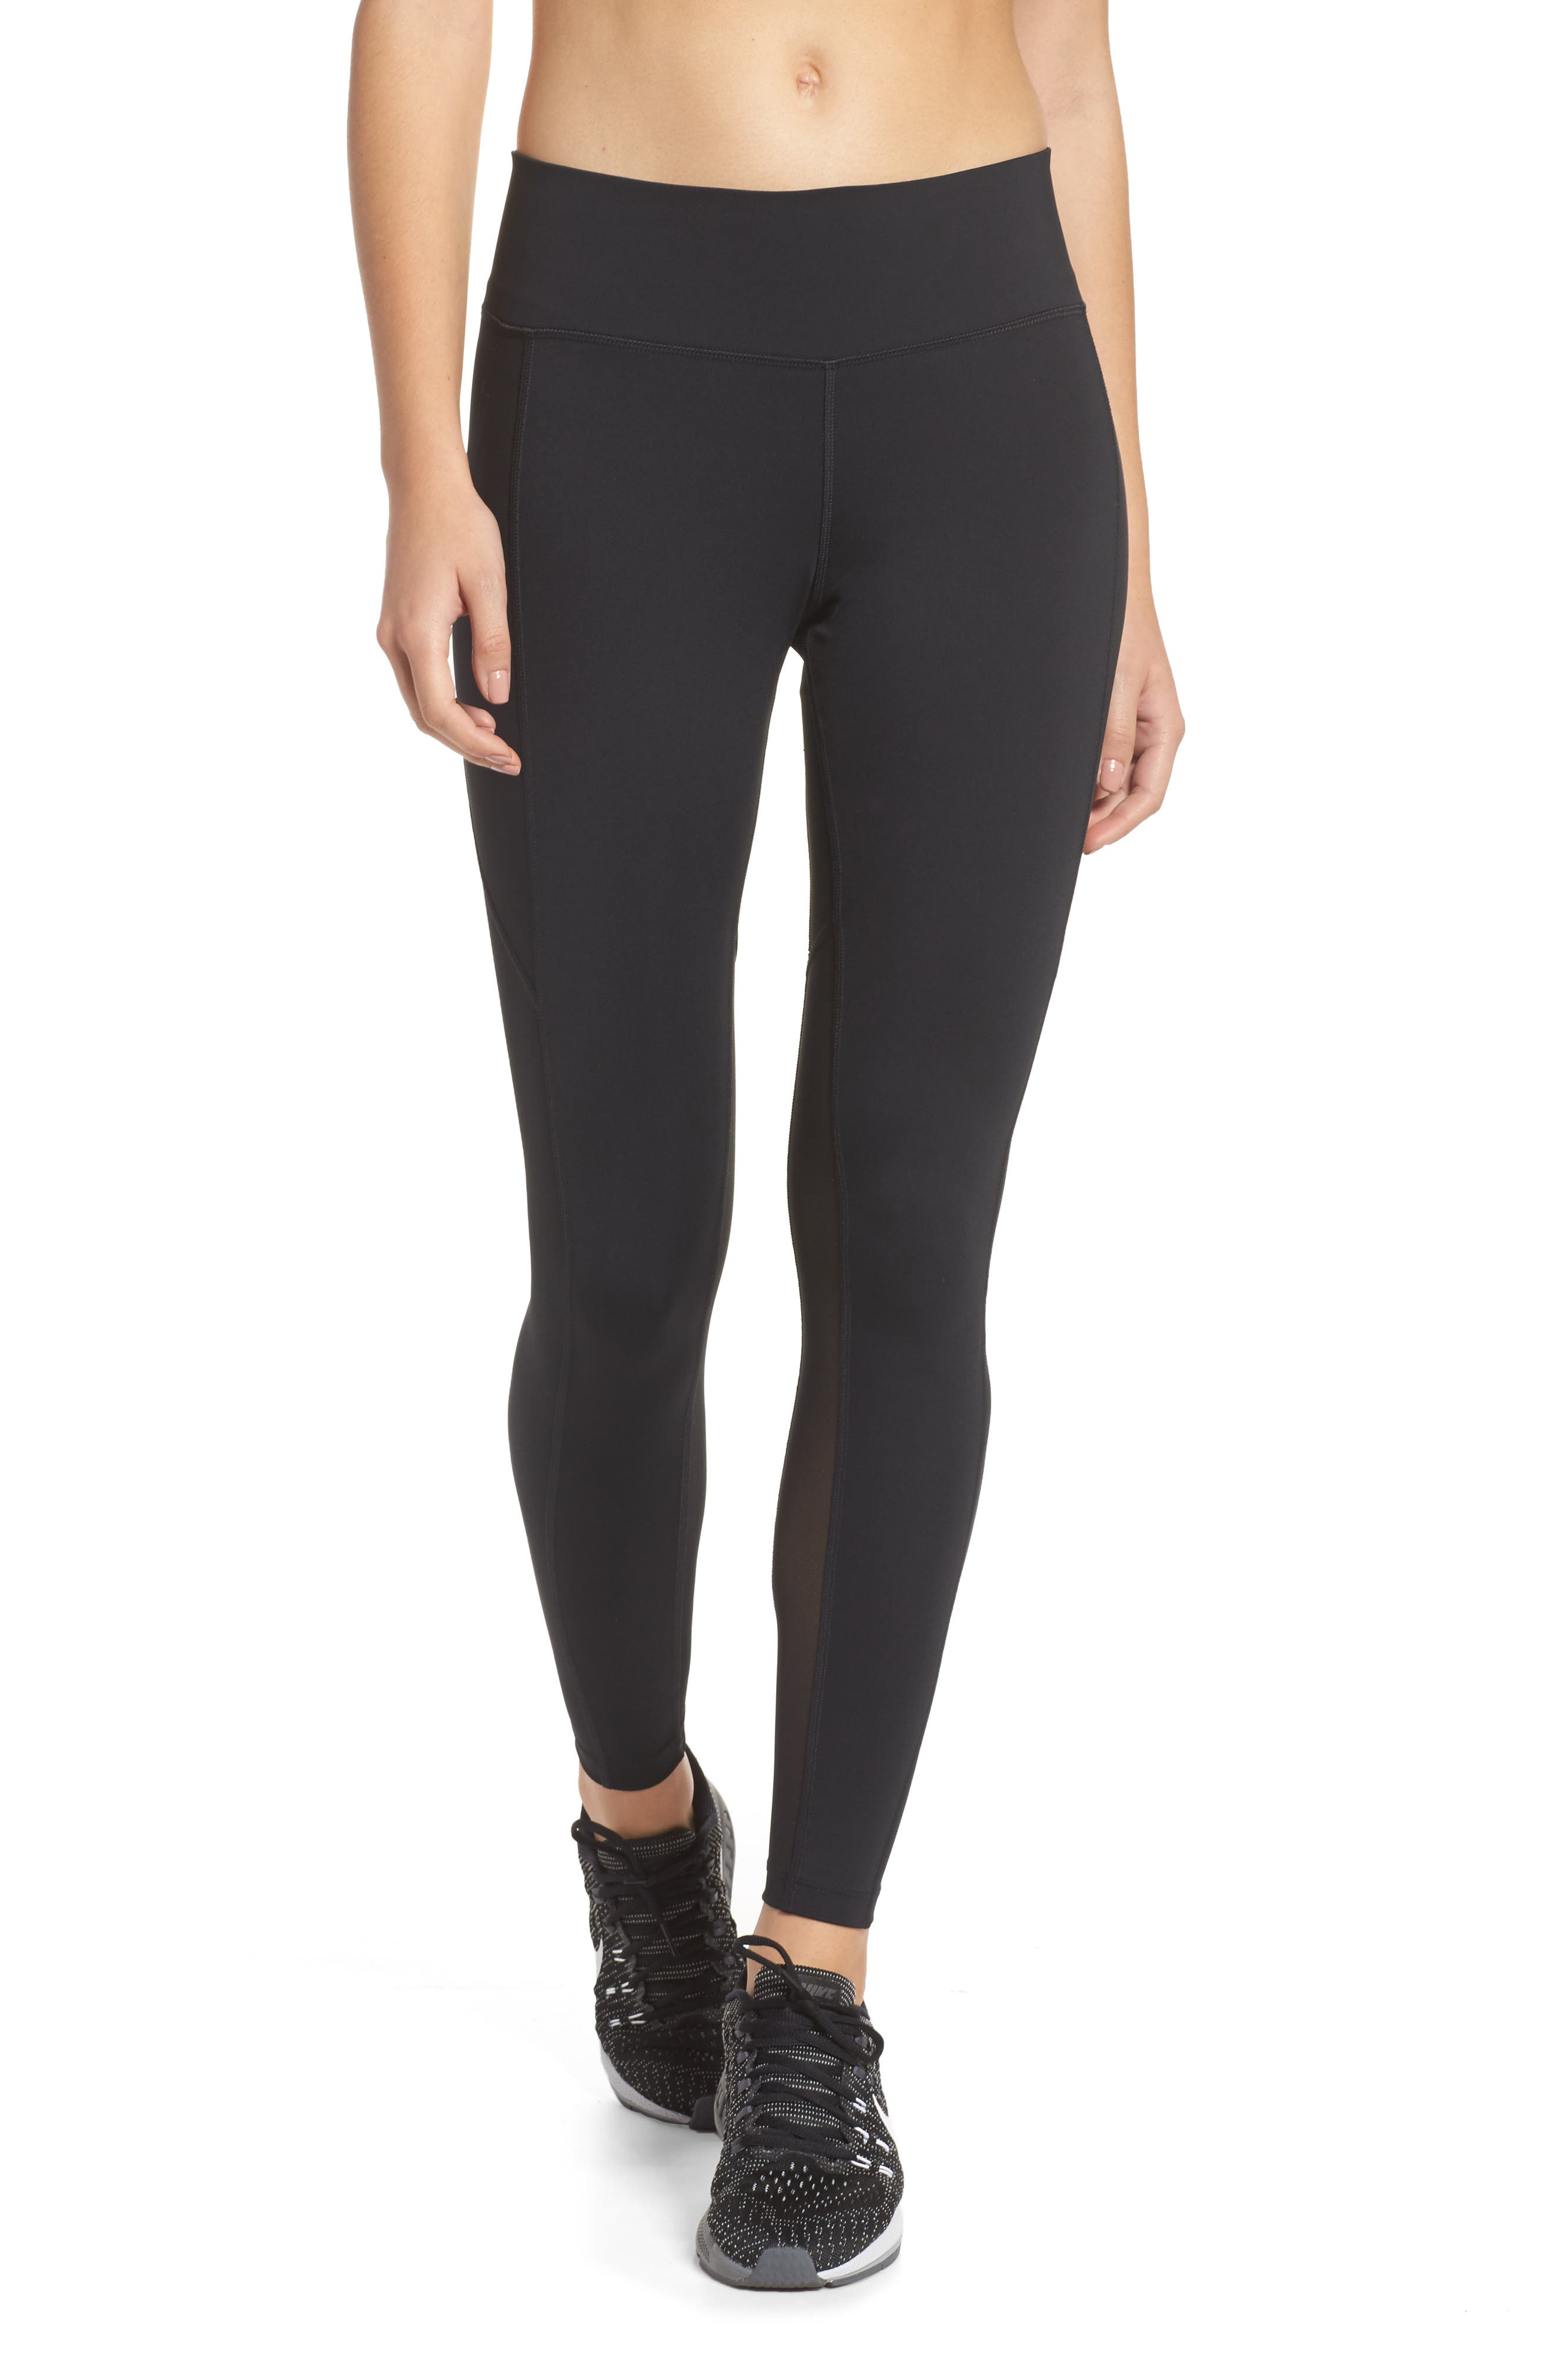 Power Pocket Lux Ankle Tights,                             Main thumbnail 1, color,                             BLACK/ BLACK/ CLEAR